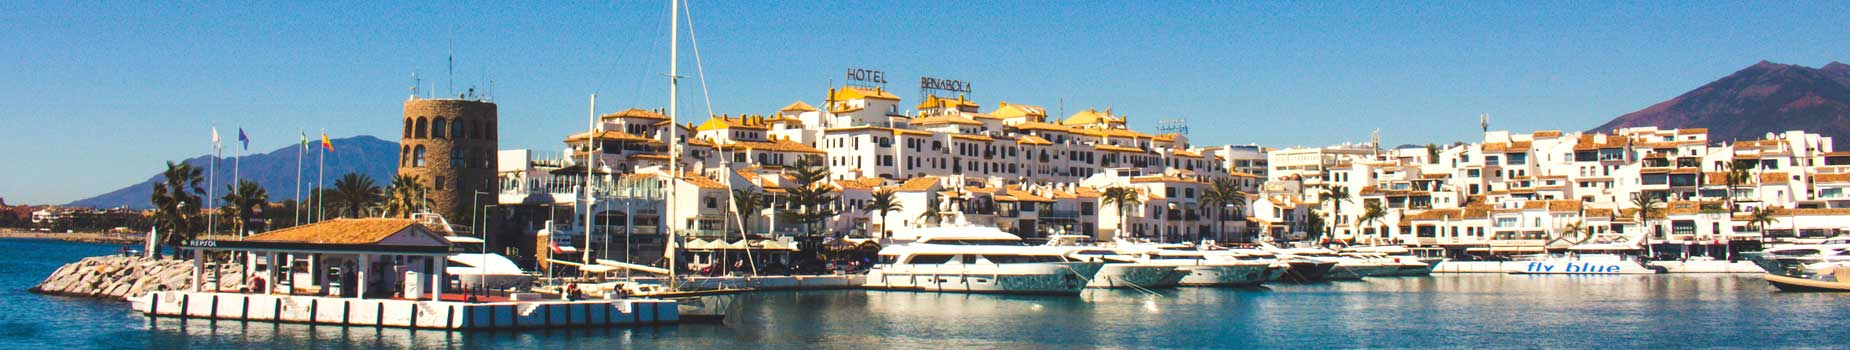 All Inclusive Puerto Banus